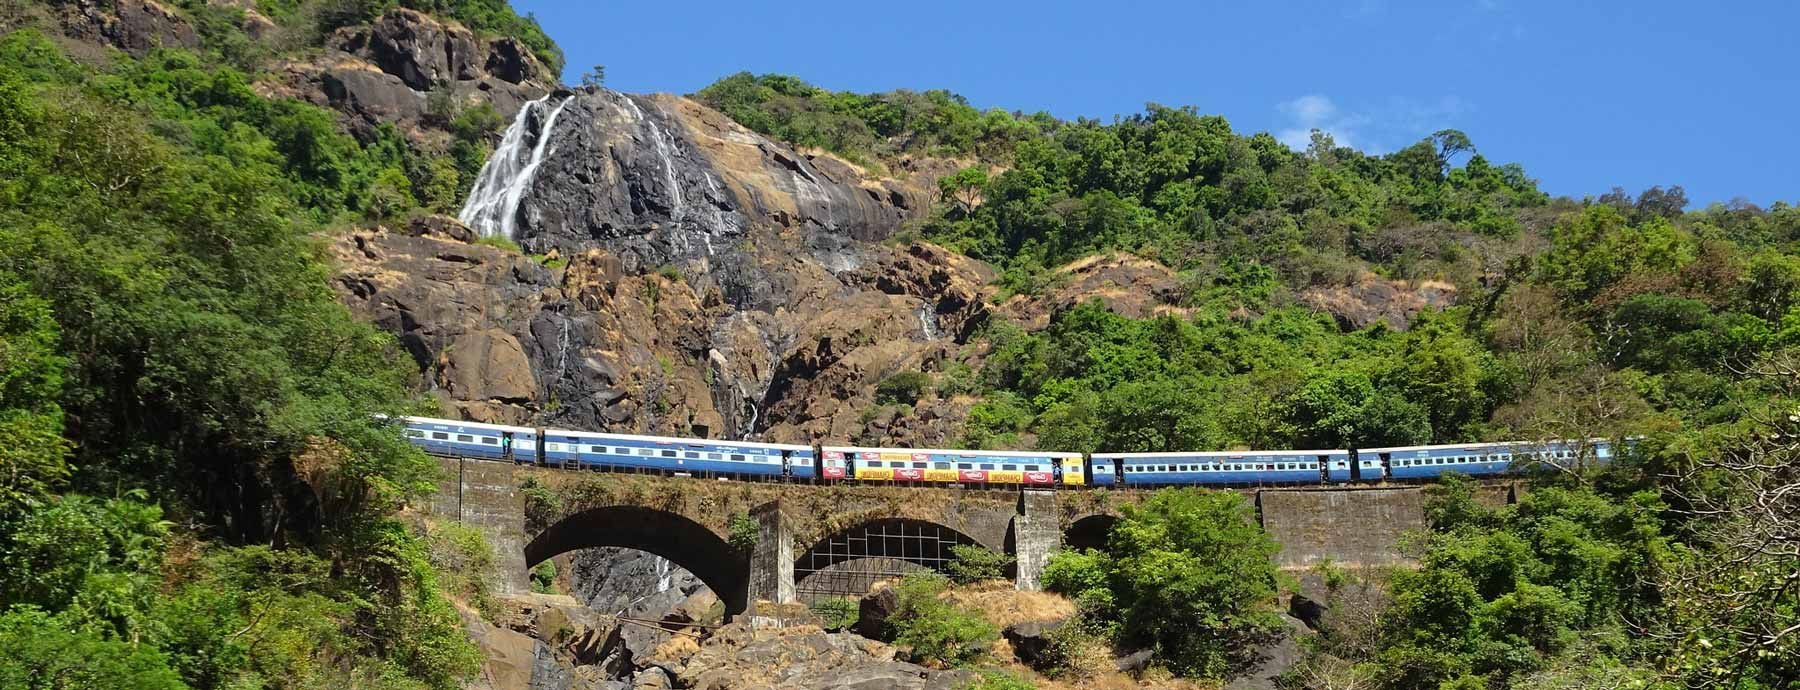 dudhsagar-falls-wide-photo